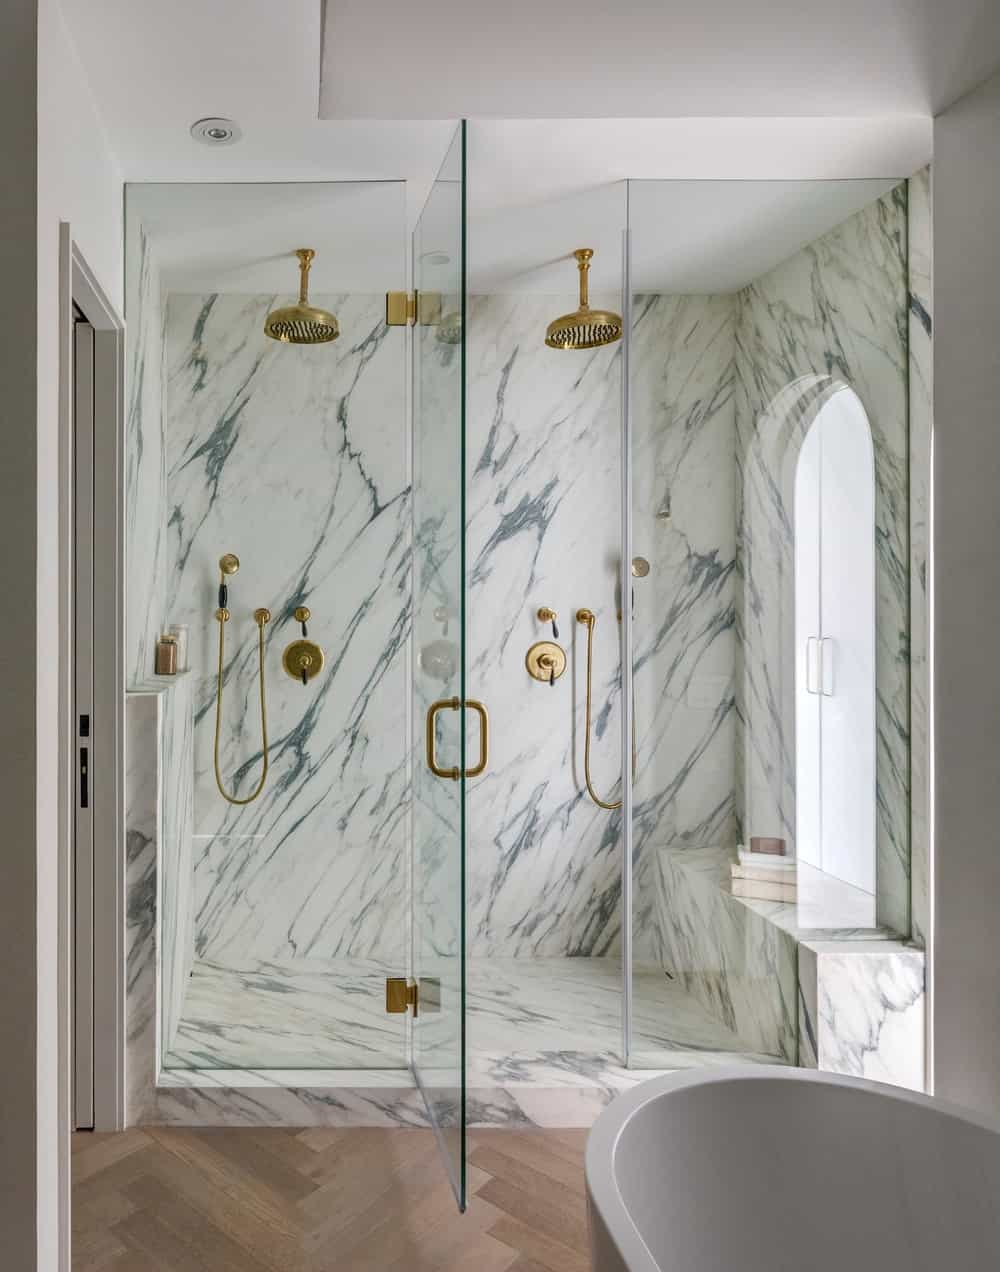 This is a look at the glass-enclosed shower area of the bathroom with white marble walls and floor that makes the bronze fixtures stand out.